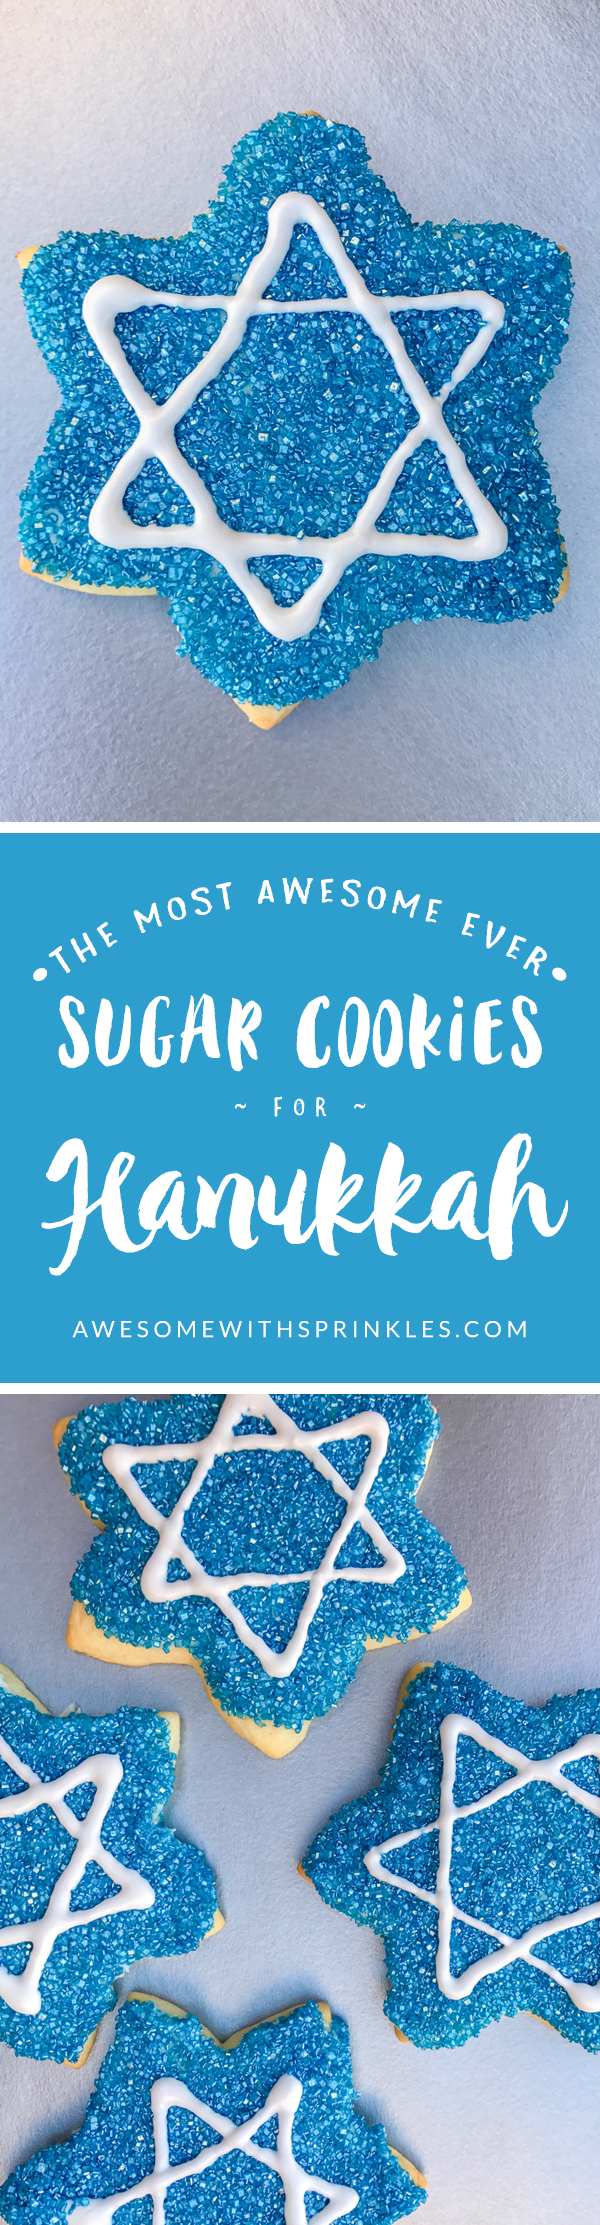 The Most Awesome Ever Sugar Cookies for Hanukkah | Awesome with Sprinkles